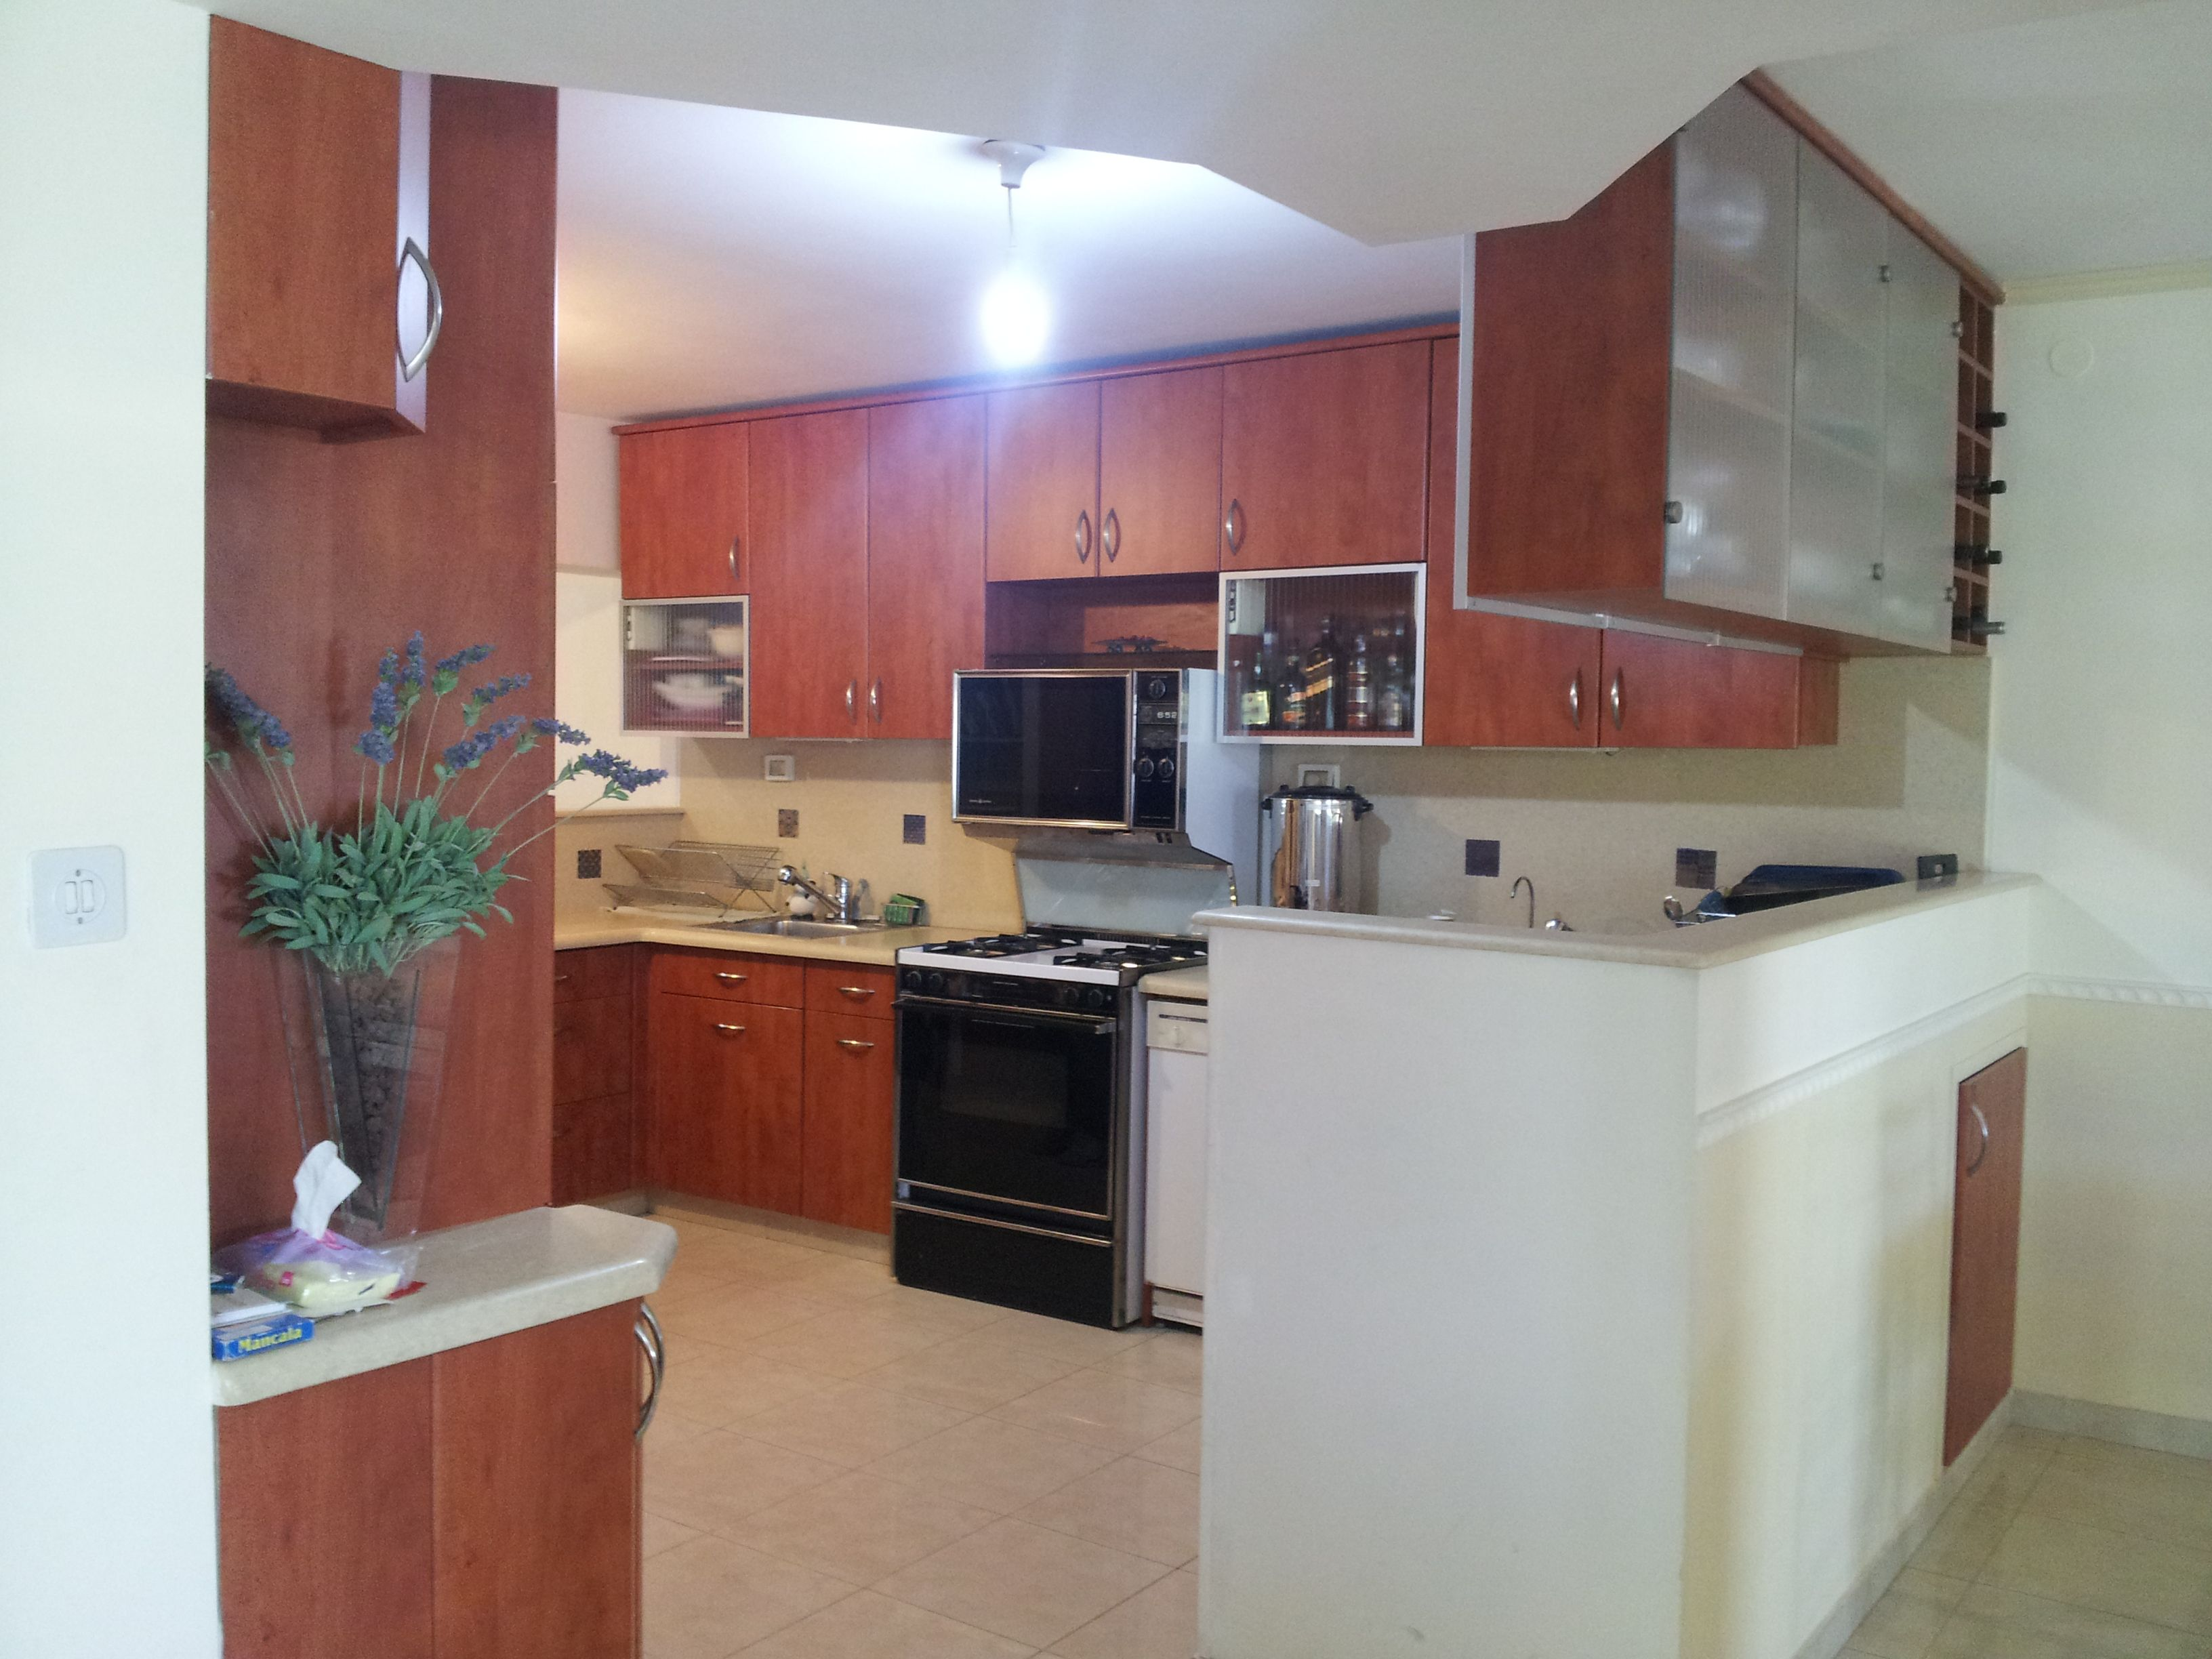 Counter & ceiling cabinets create a wall between kitchen ...